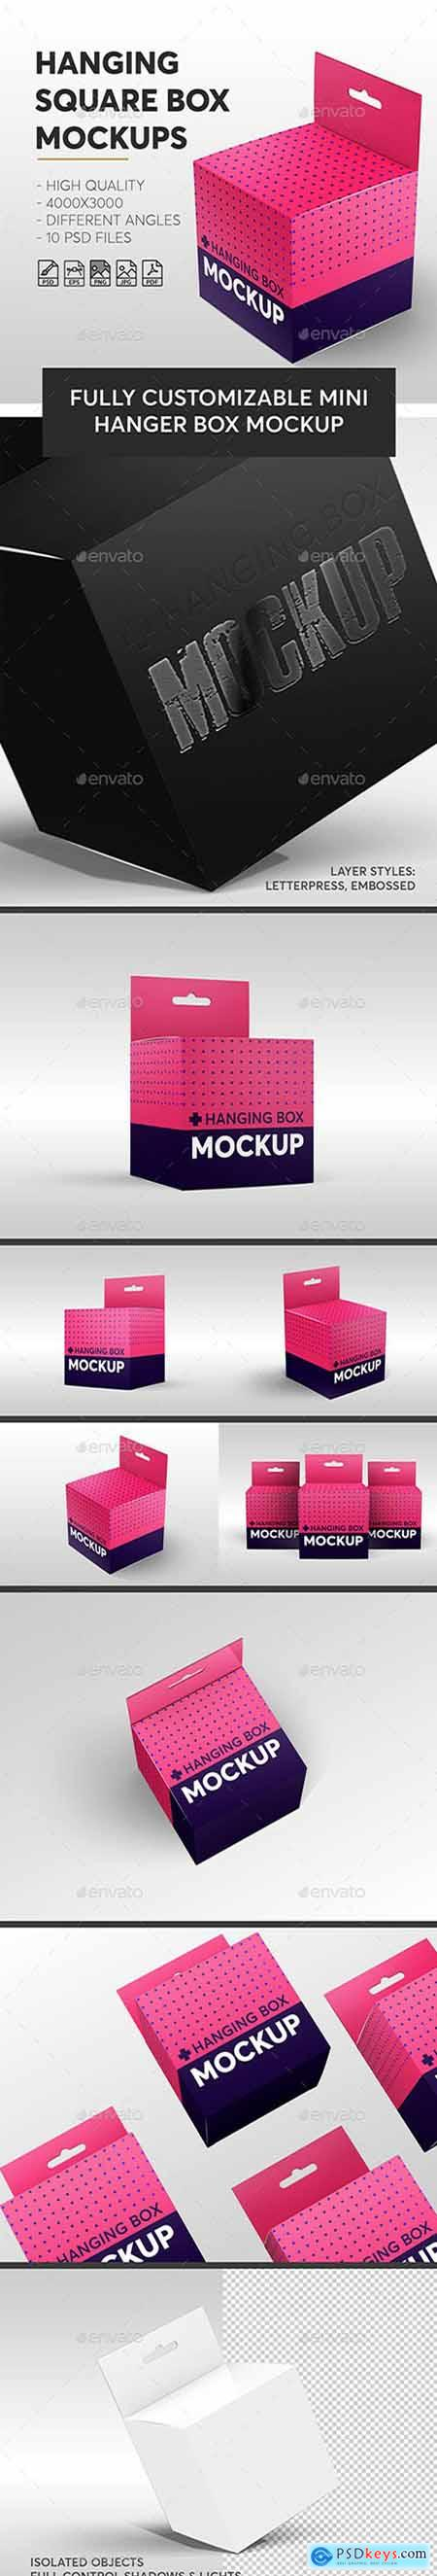 Graphicriver Hanging Square Box Mockups V.1 Miscellaneous